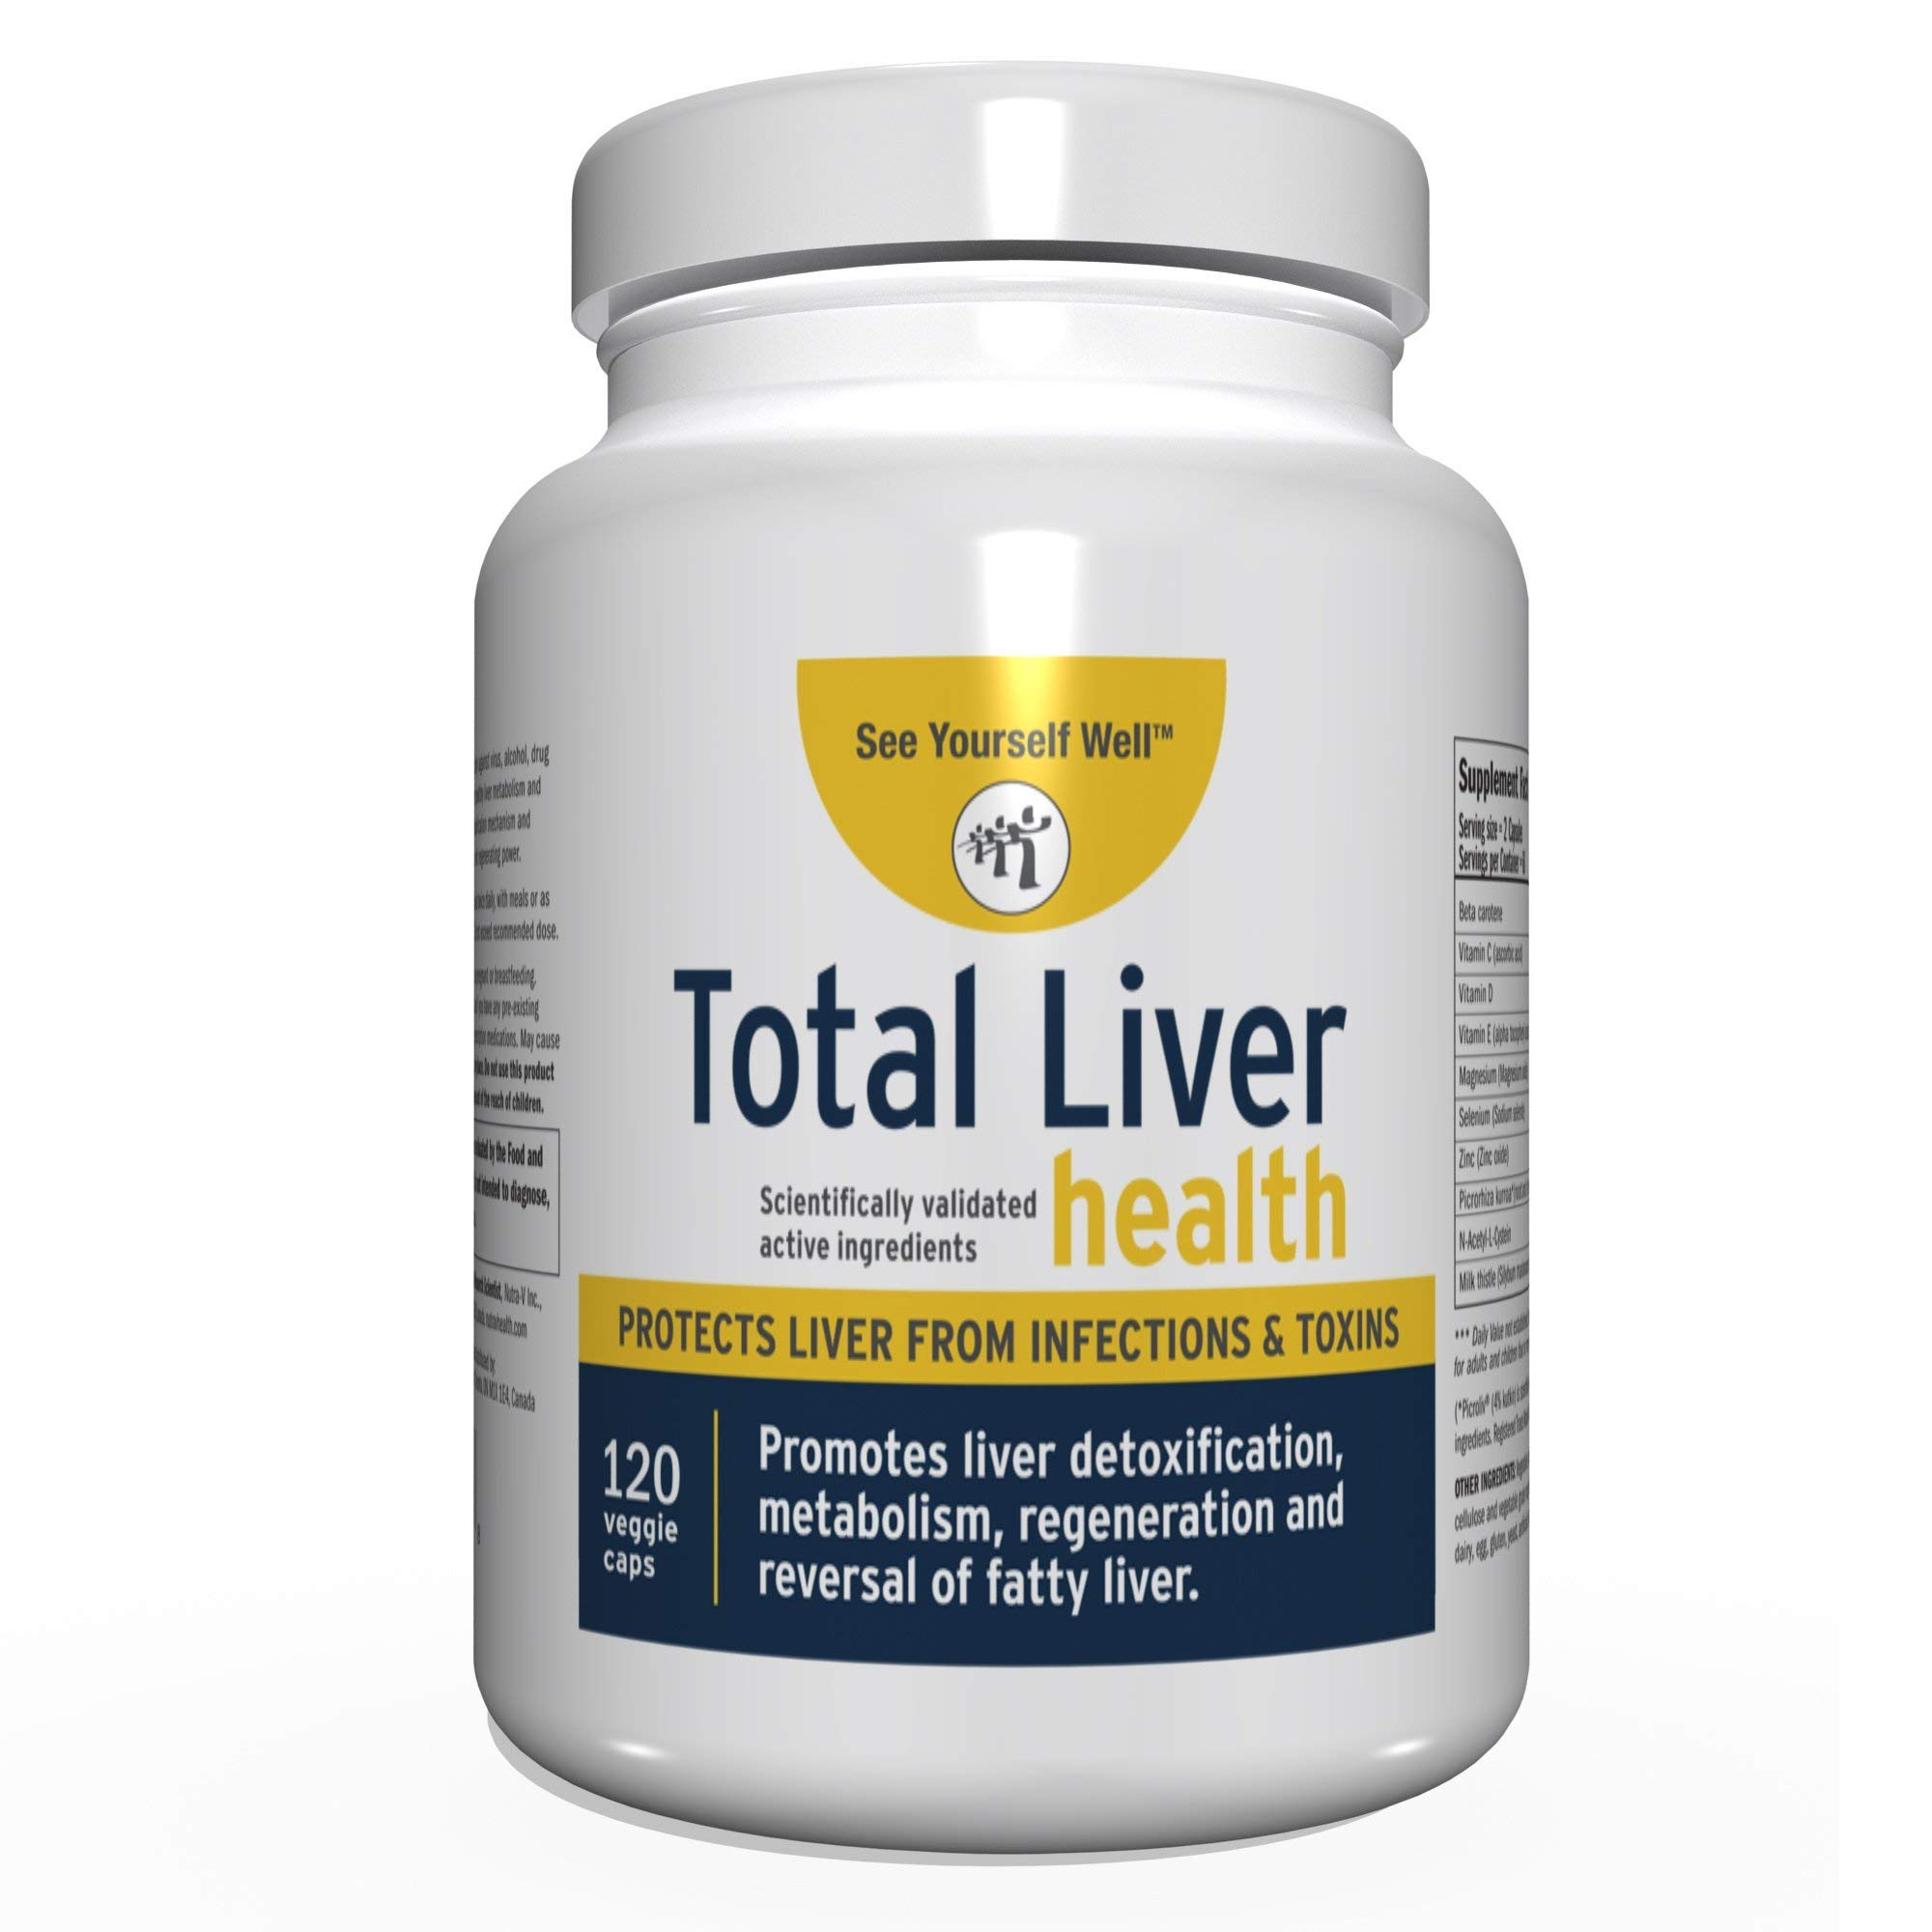 Total Liver Health: Liver Cleanse, Detox, Regeneration, Fatty Liver Reversal. Protection from Infections & Toxins. Trademarked Ingredient Picroliv. (120)